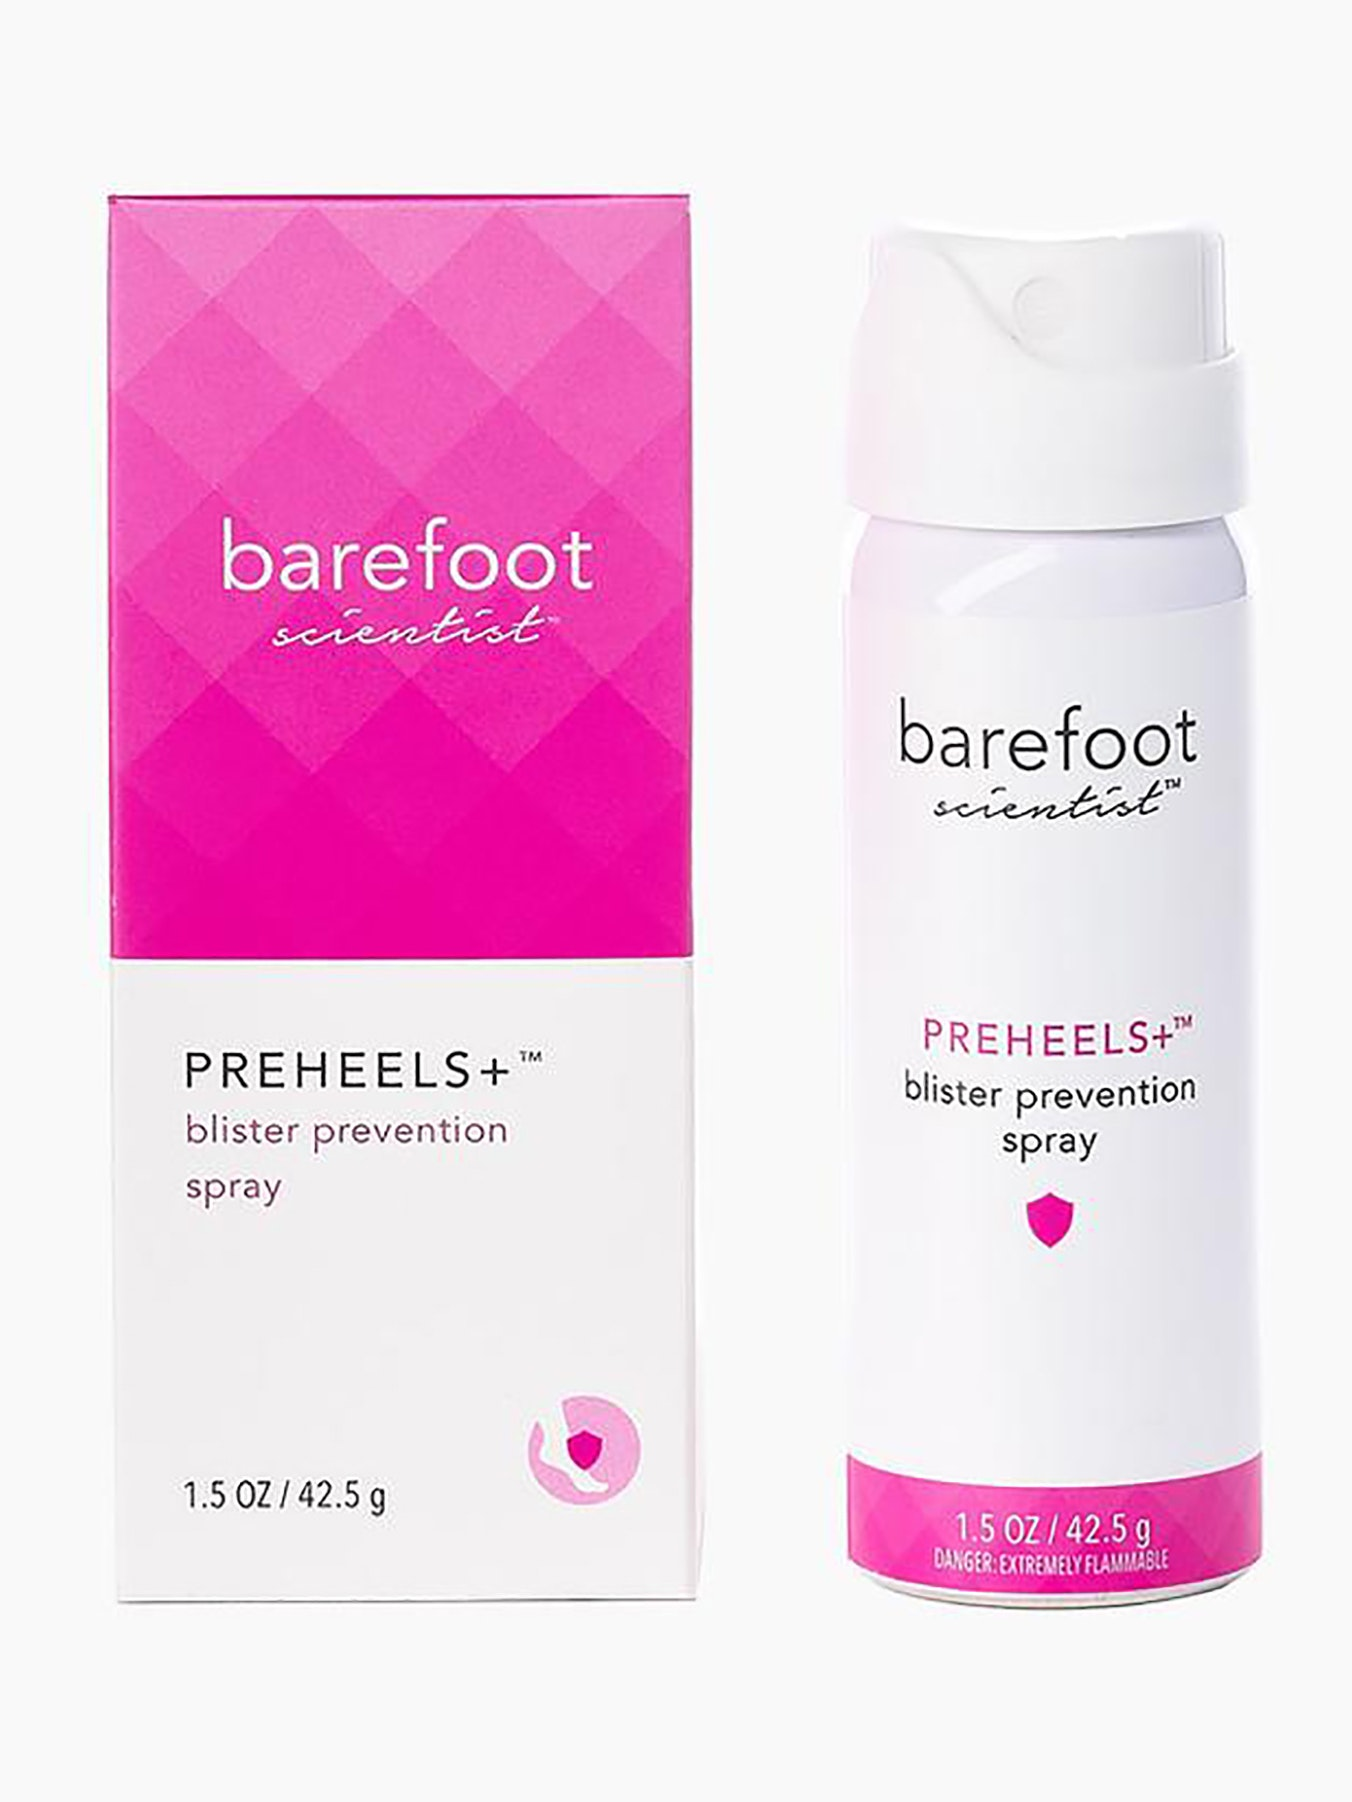 Barefoot Scientist™ PreHeels+® Blister Prevention Spray